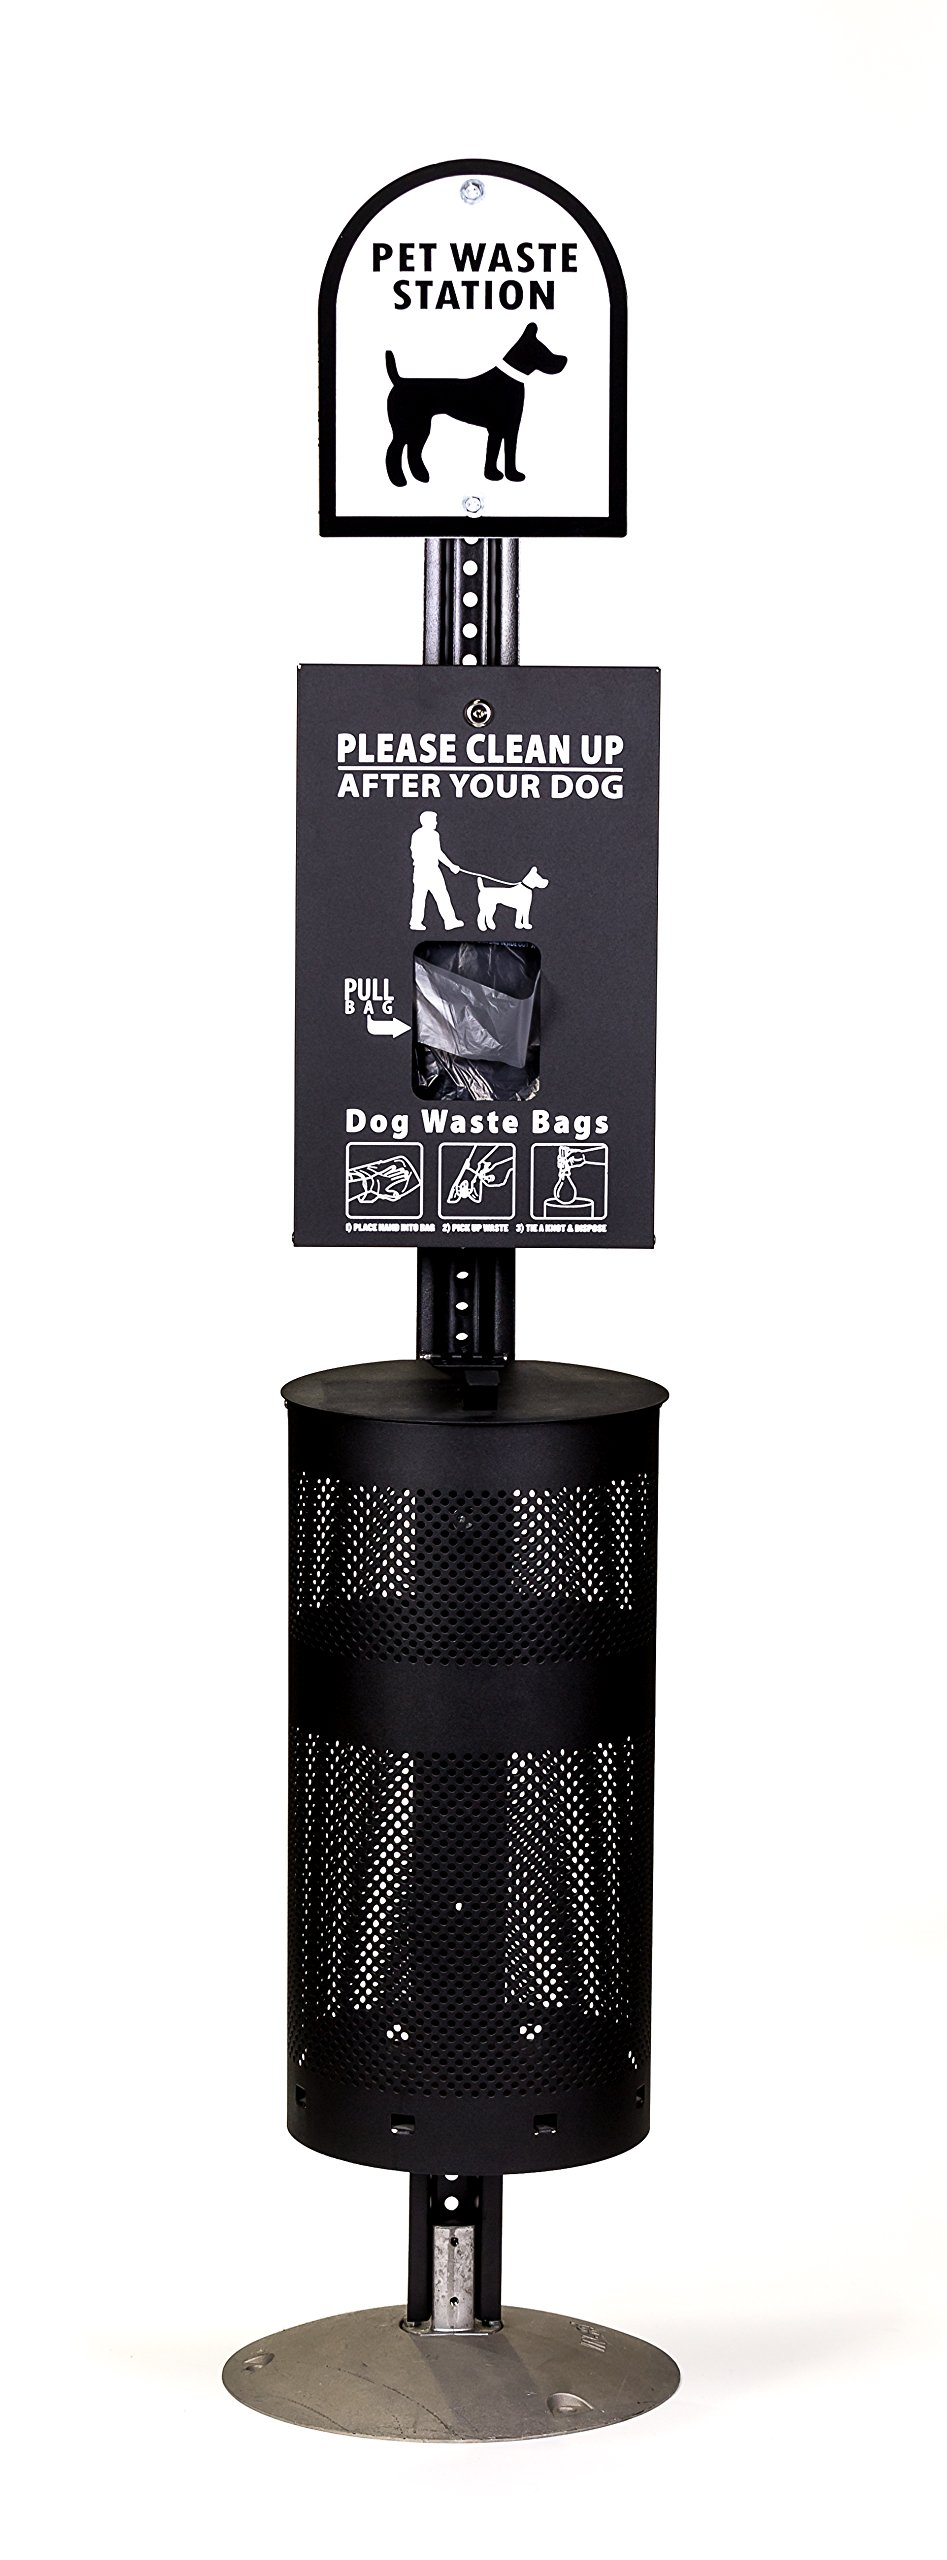 Dog Waste Station - Everything Included - FREE 400 waste bags and 50 can liners